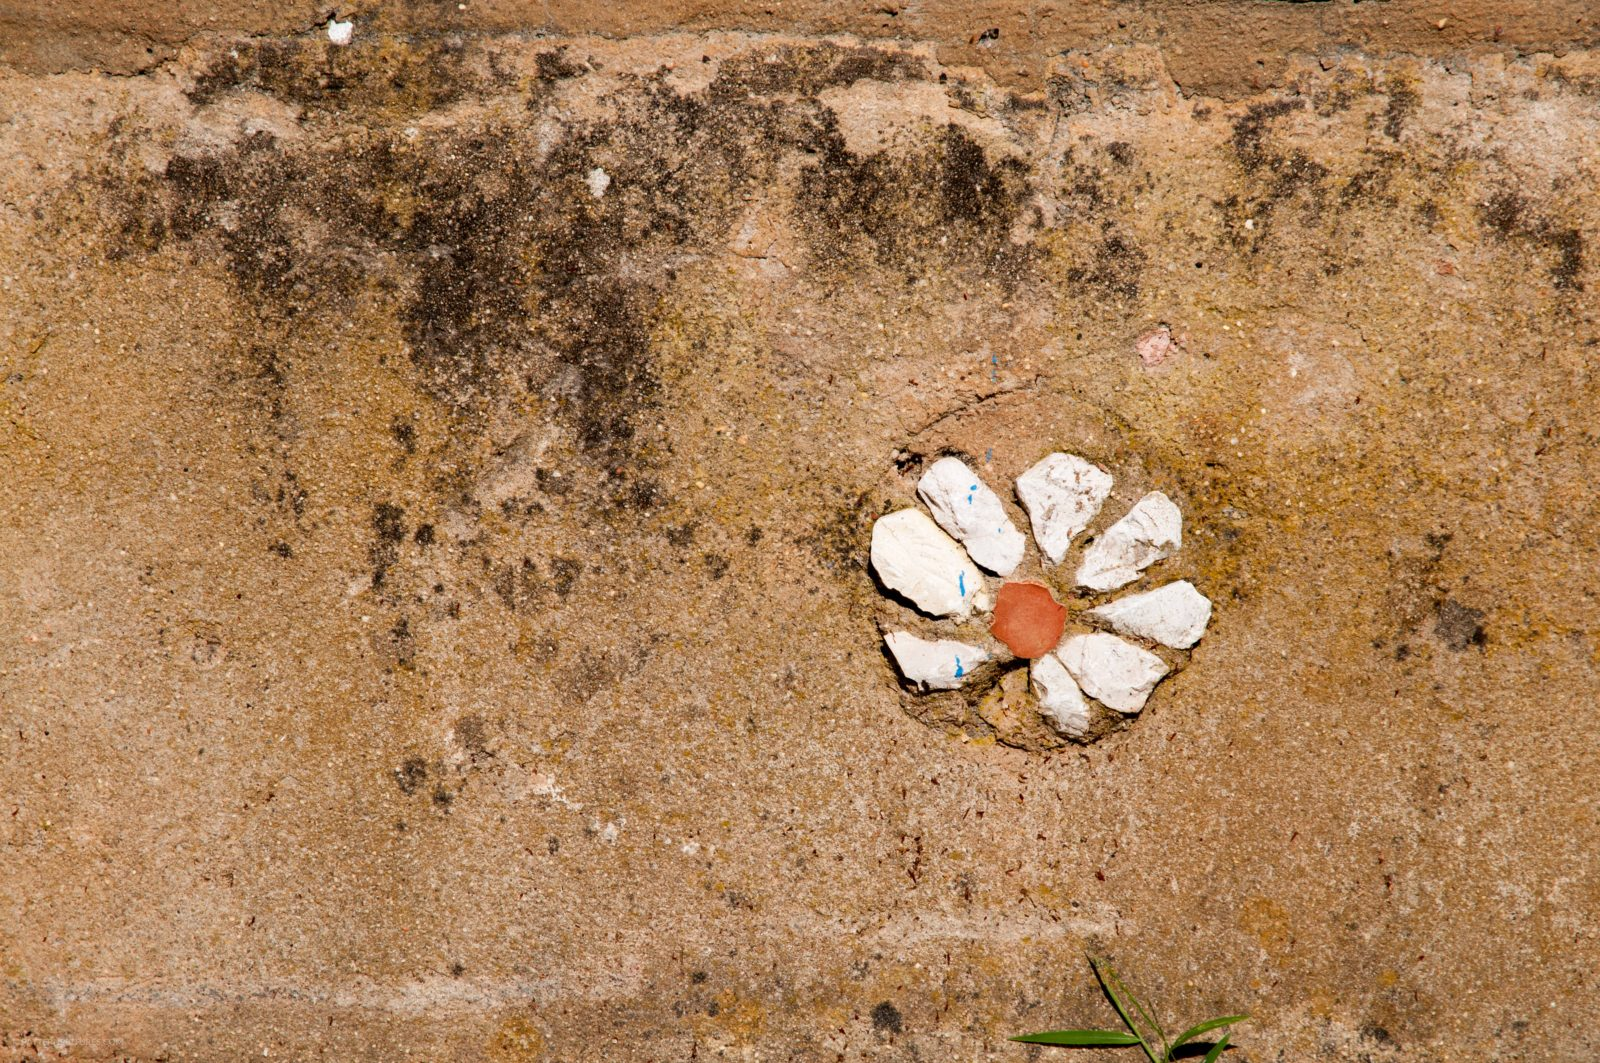 Wall flower stones